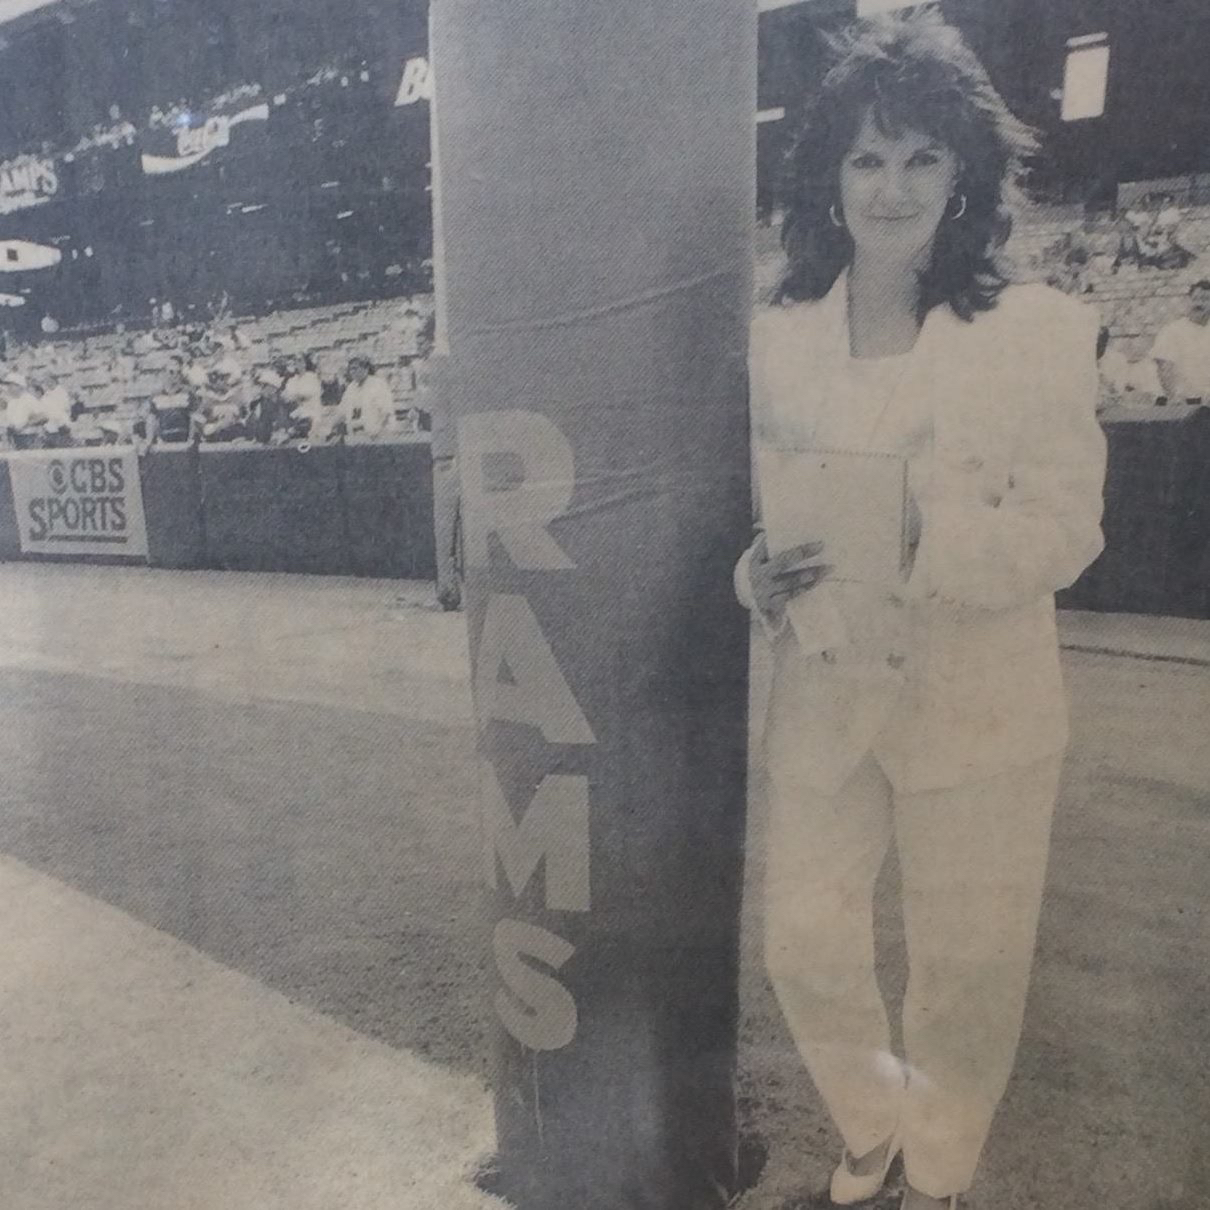 A black and white photo of Paola Boivin in front of the LA Rams goal post.